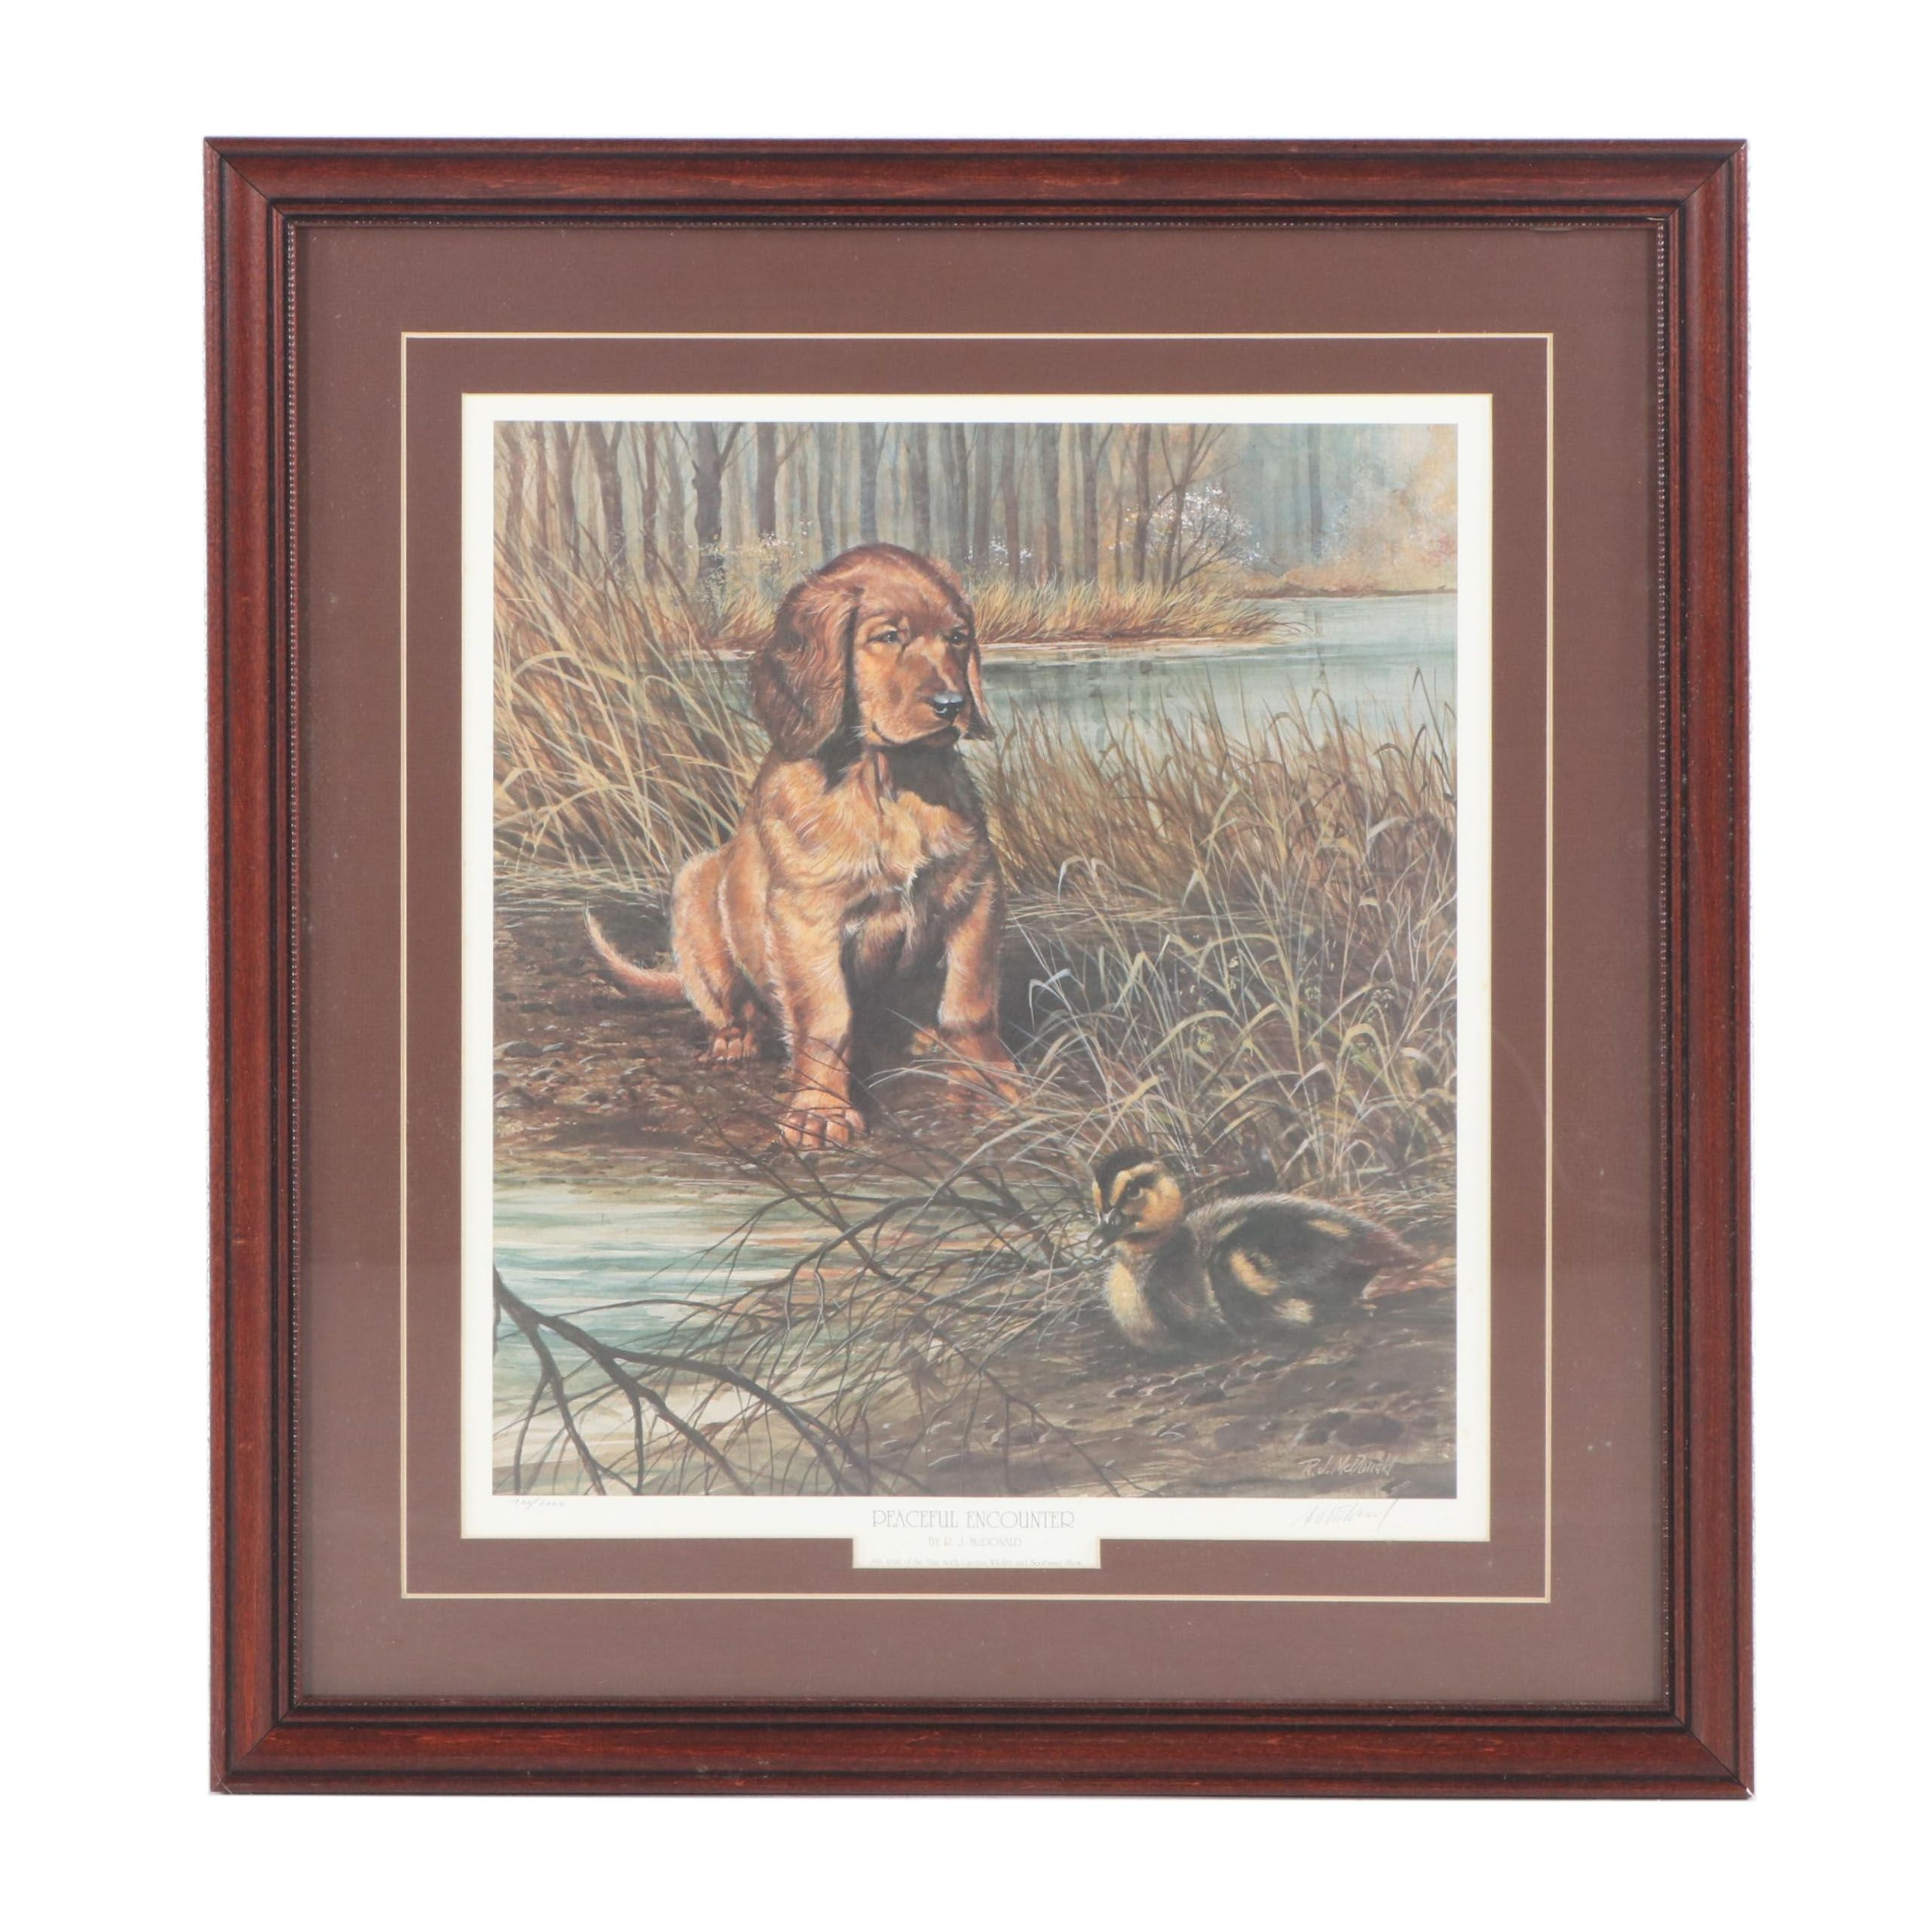 """Ralph J. McDonald Limited Edition Offset Lithograph """"Peaceful Encounter"""""""